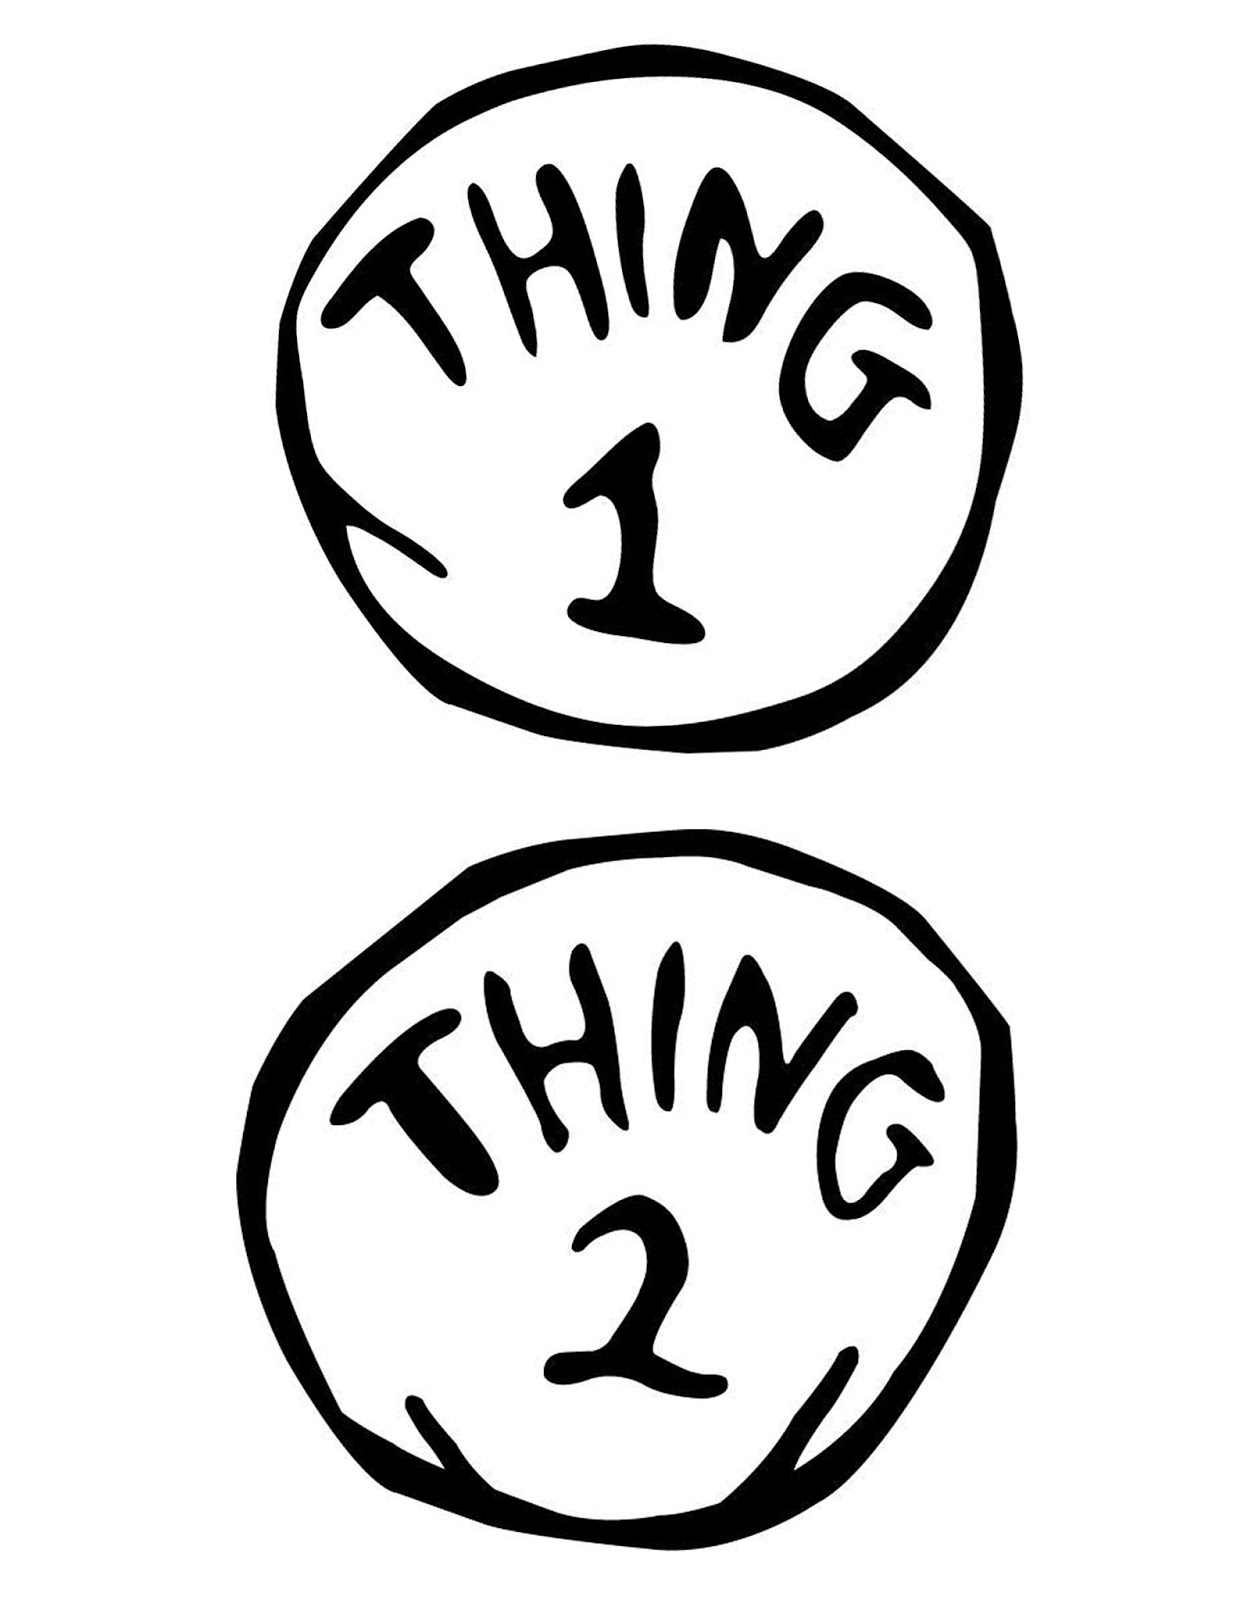 Slobbery image within thing 1 and thing 2 free printable template